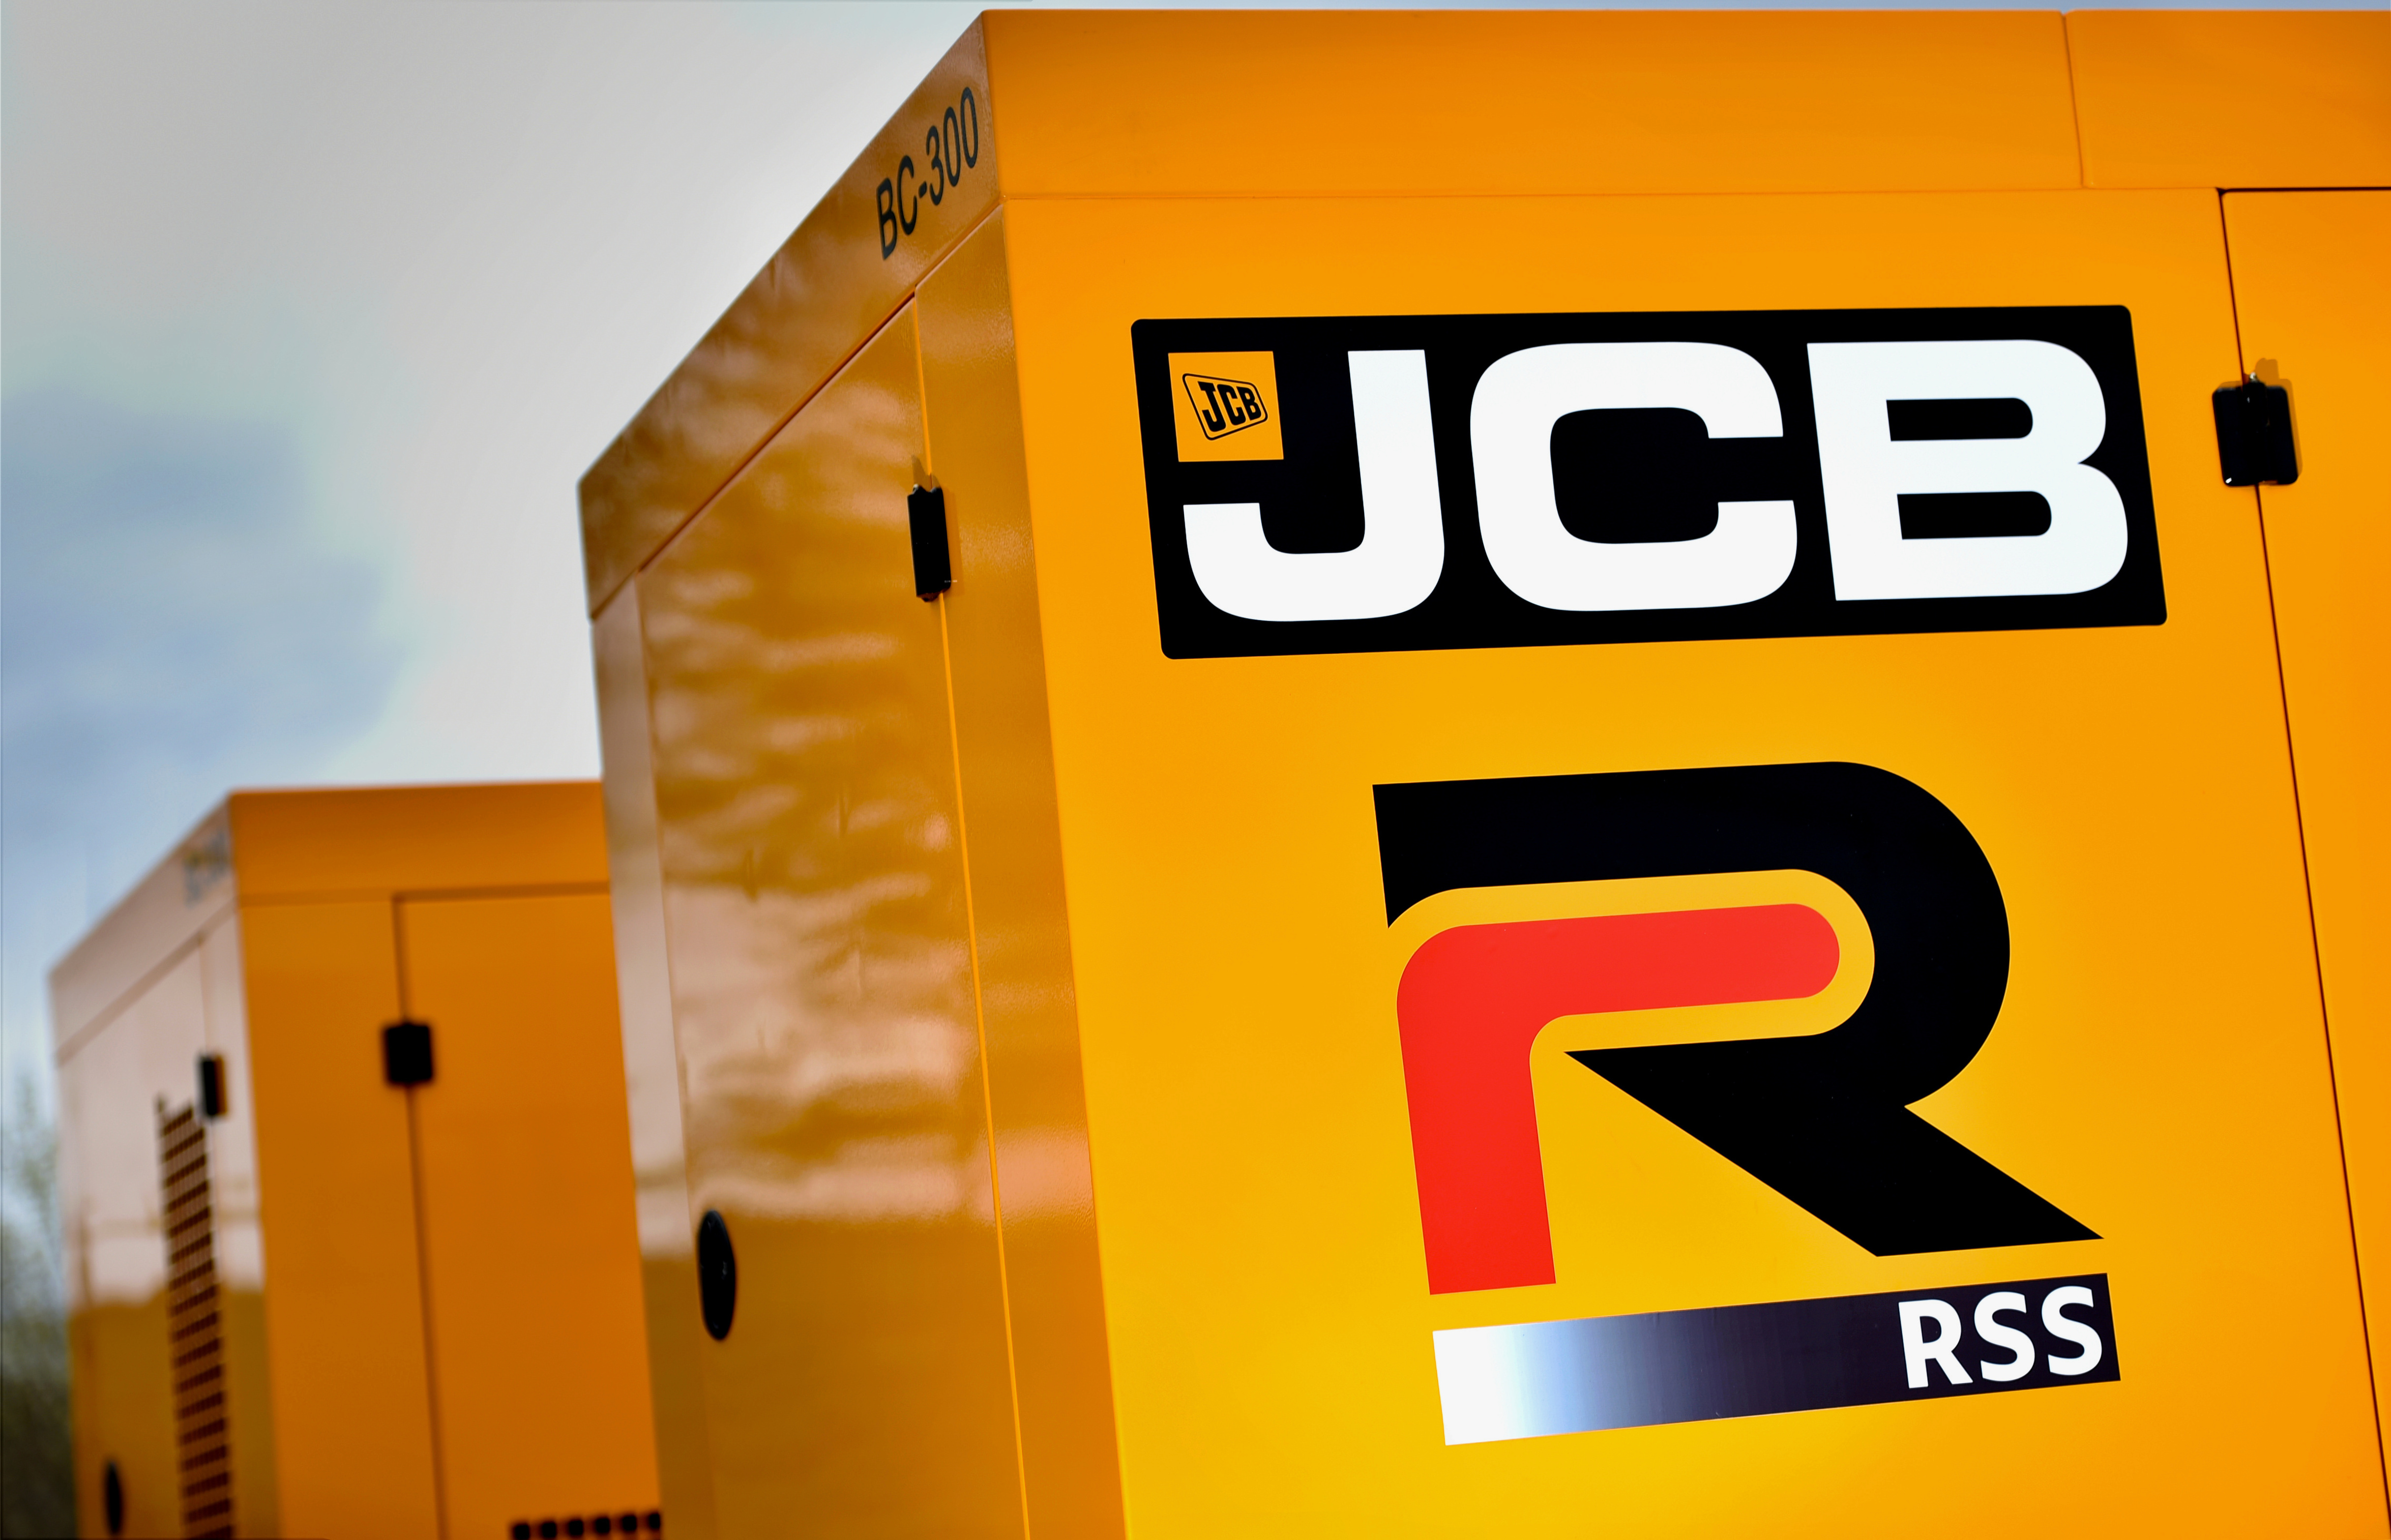 Jcb generator business powers ahead with huge rental deal amps view more biocorpaavc Image collections